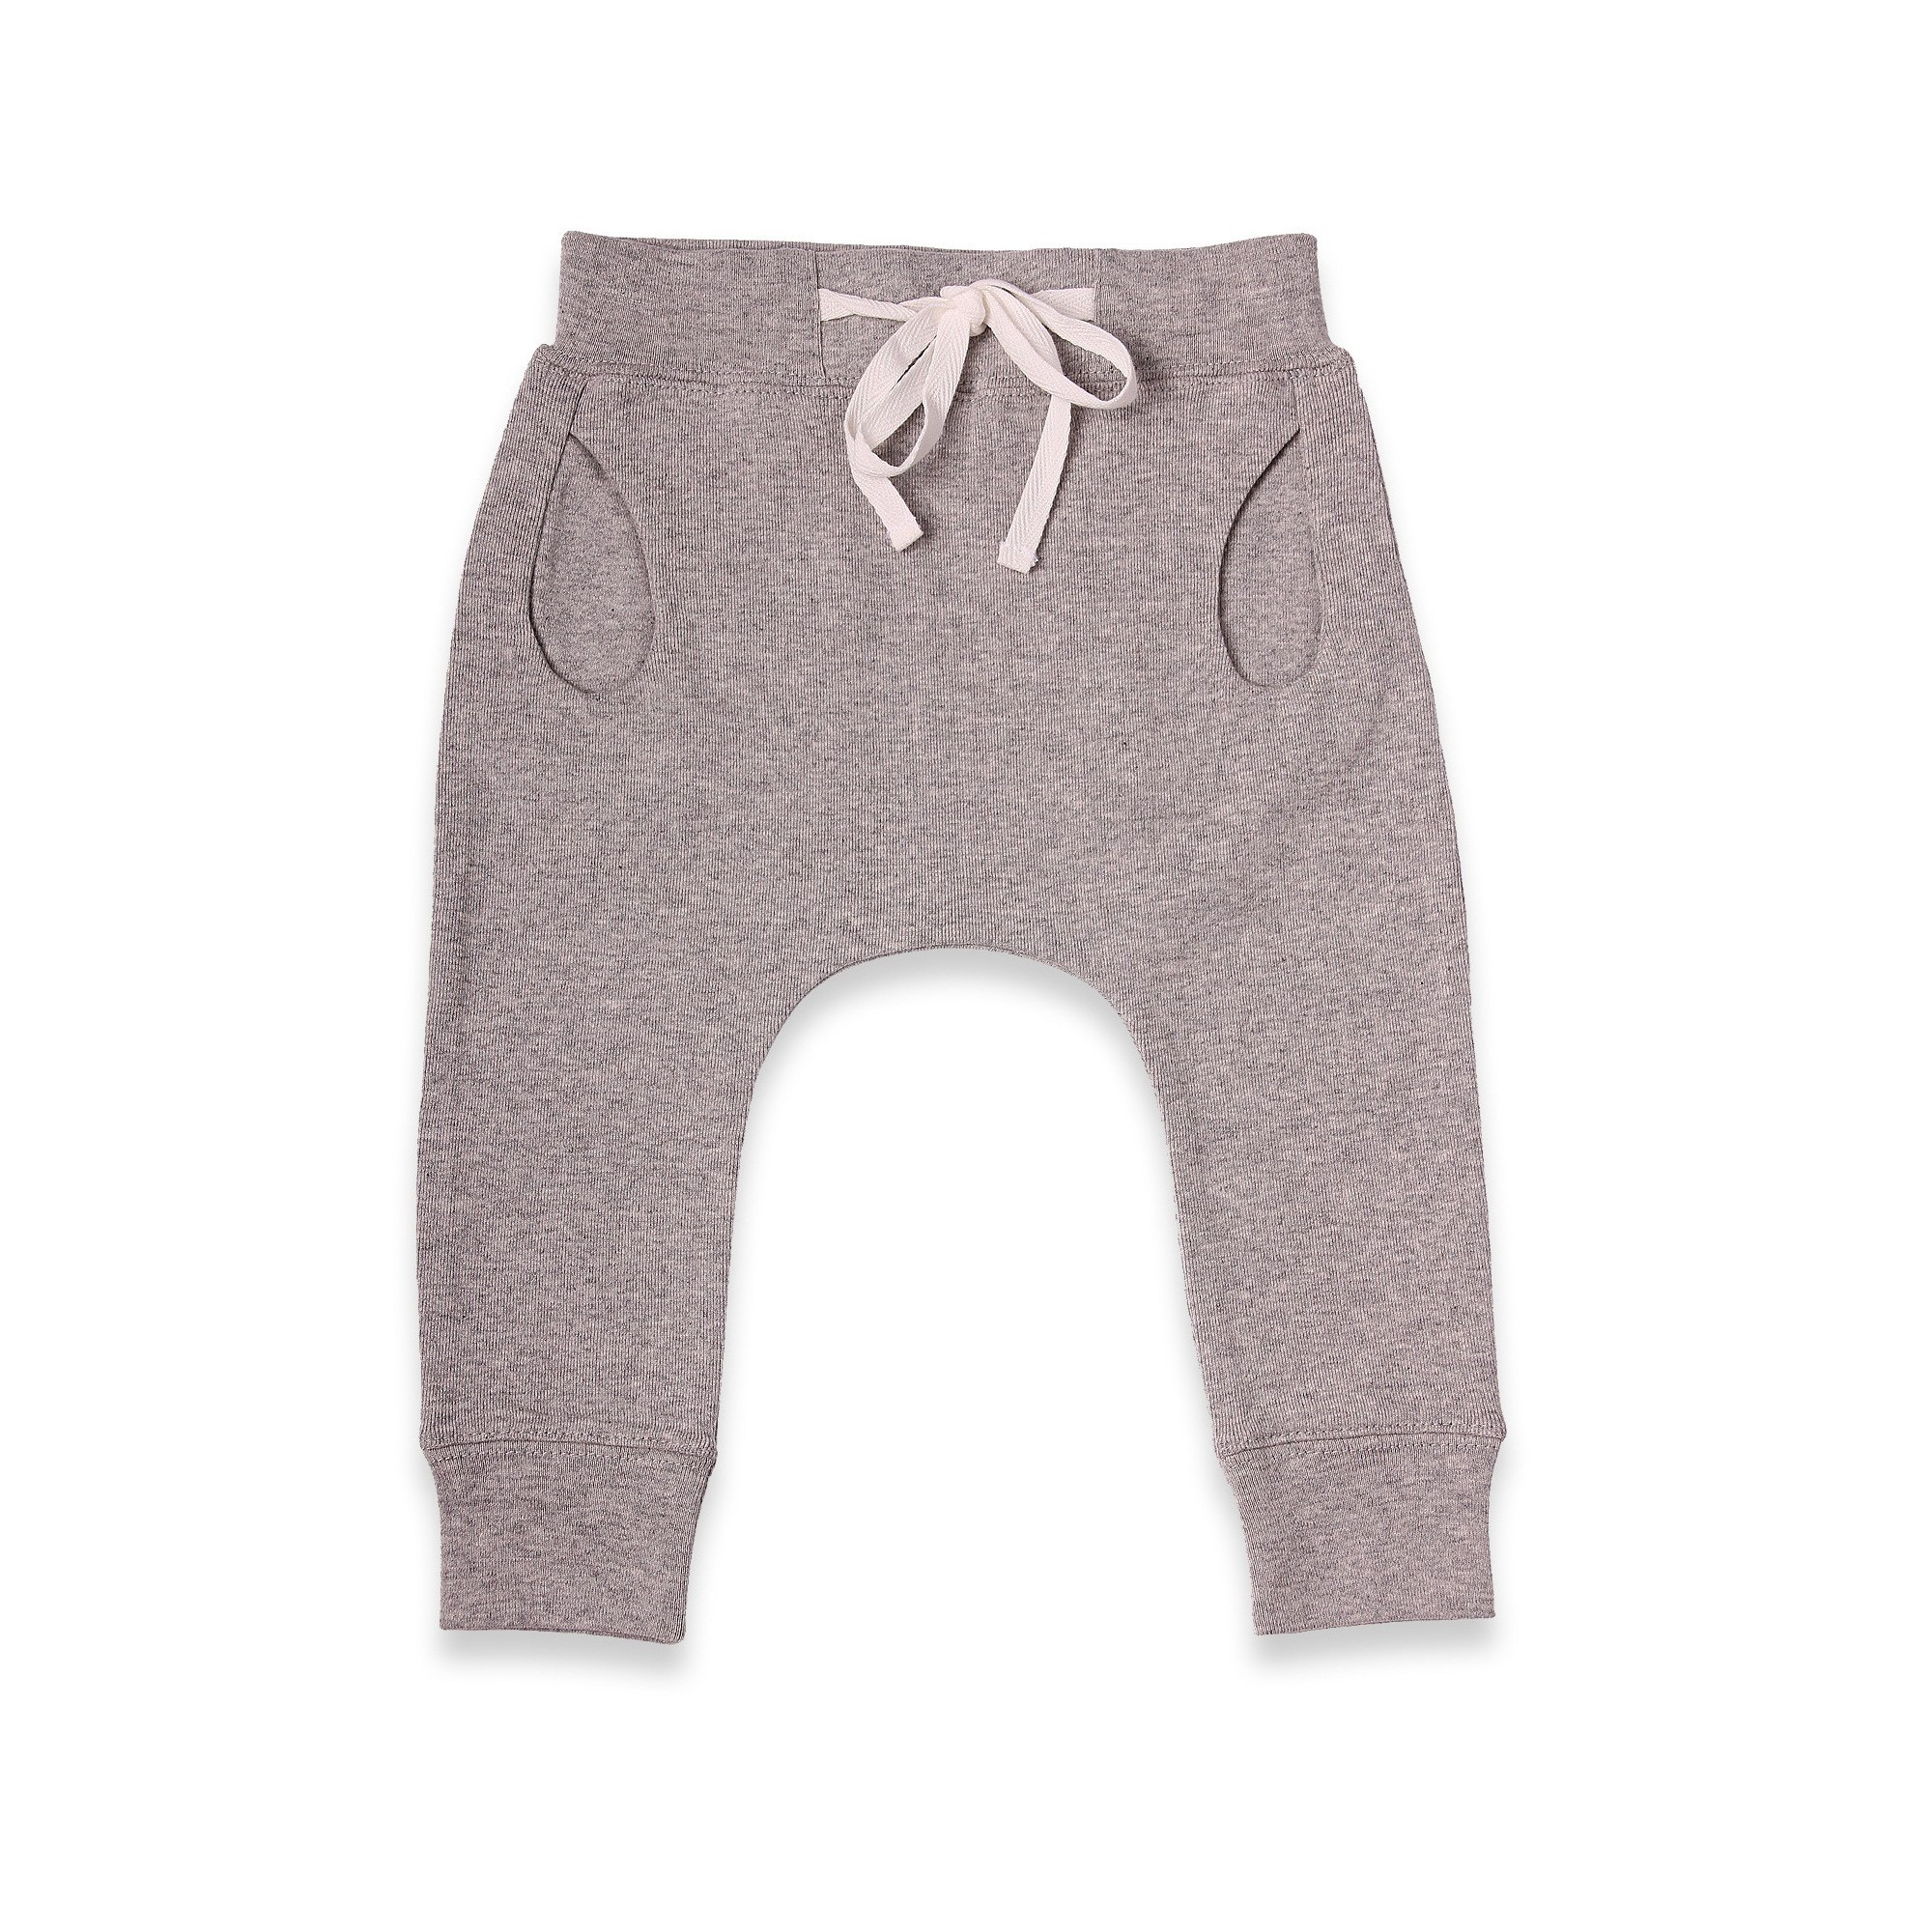 Grey jogging pants with a sarouel shape. Made from 100% pure coton jersey. Elasticated waist and cotton twill band